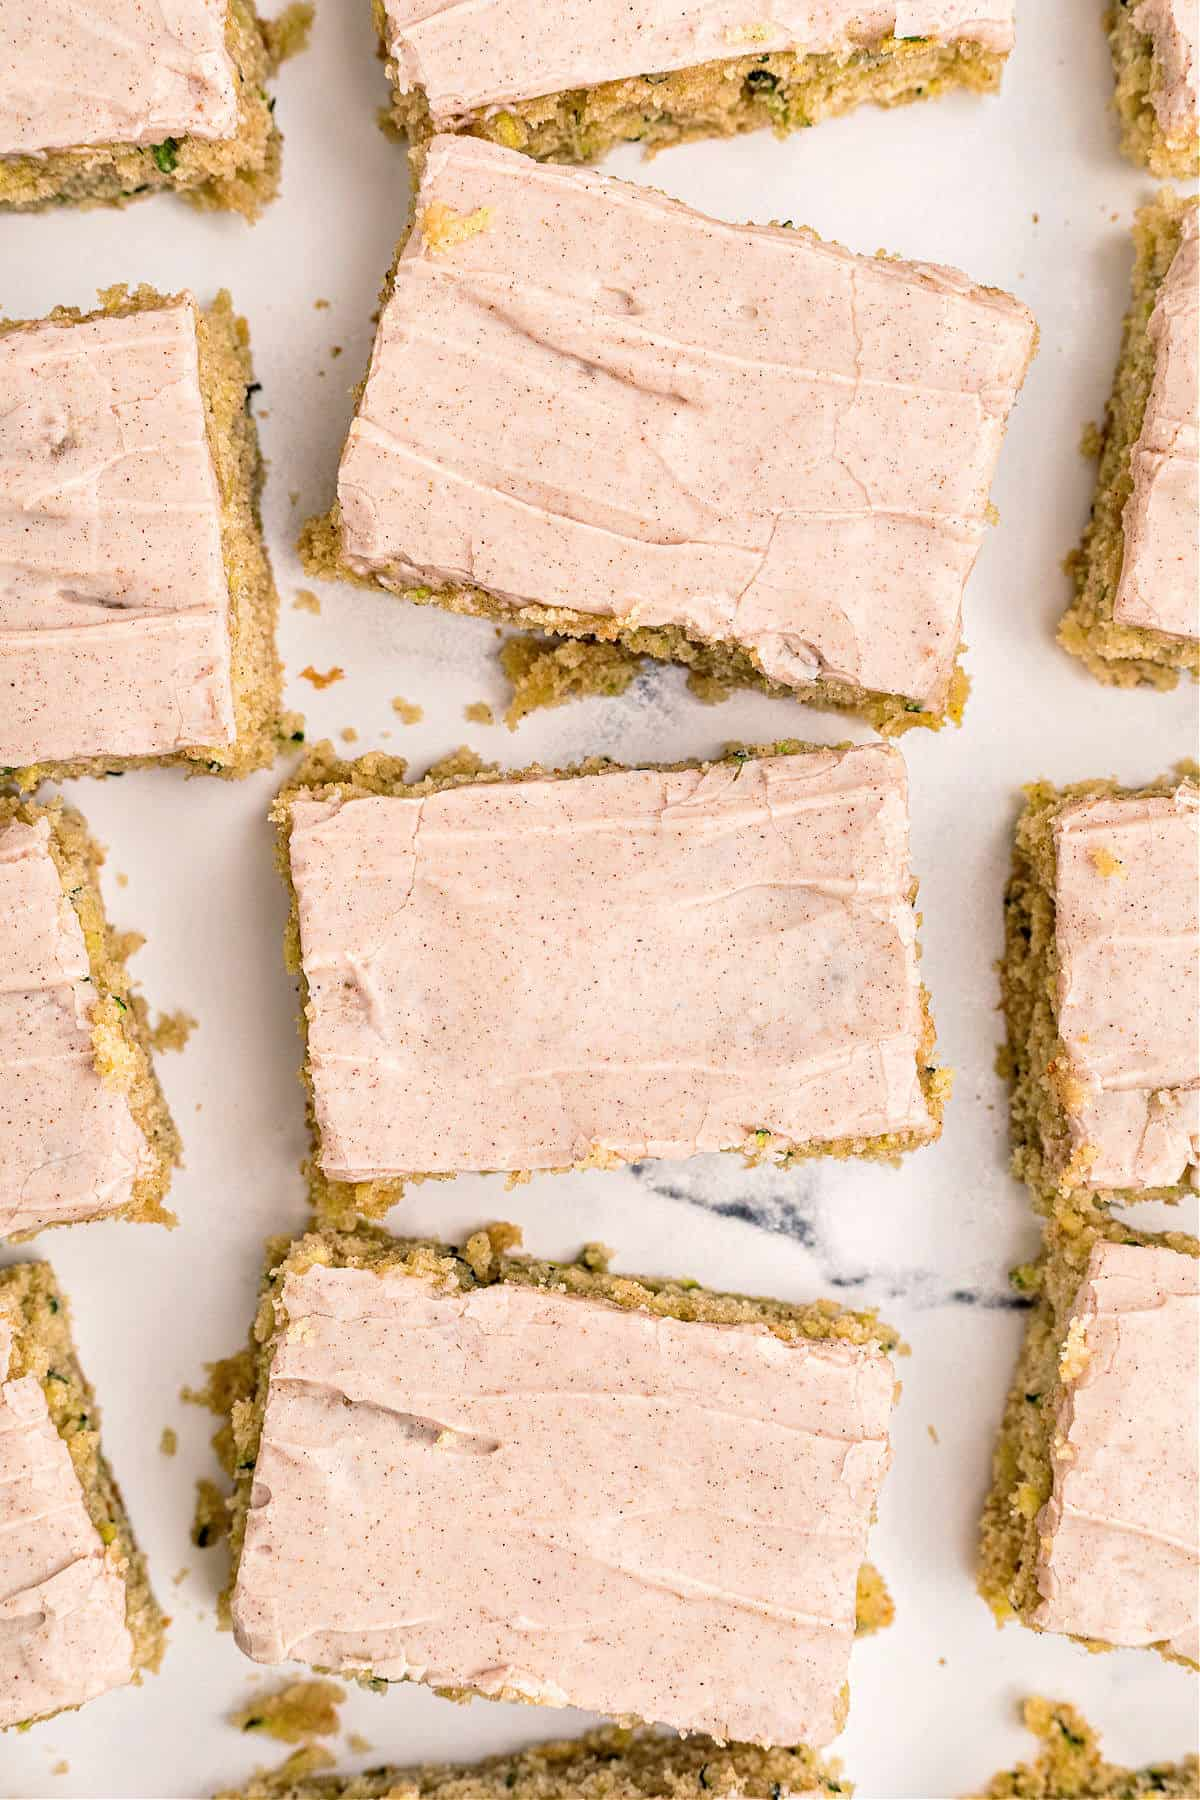 Cinnamon frosted zucchini bars cut into squares on white parchment paper.